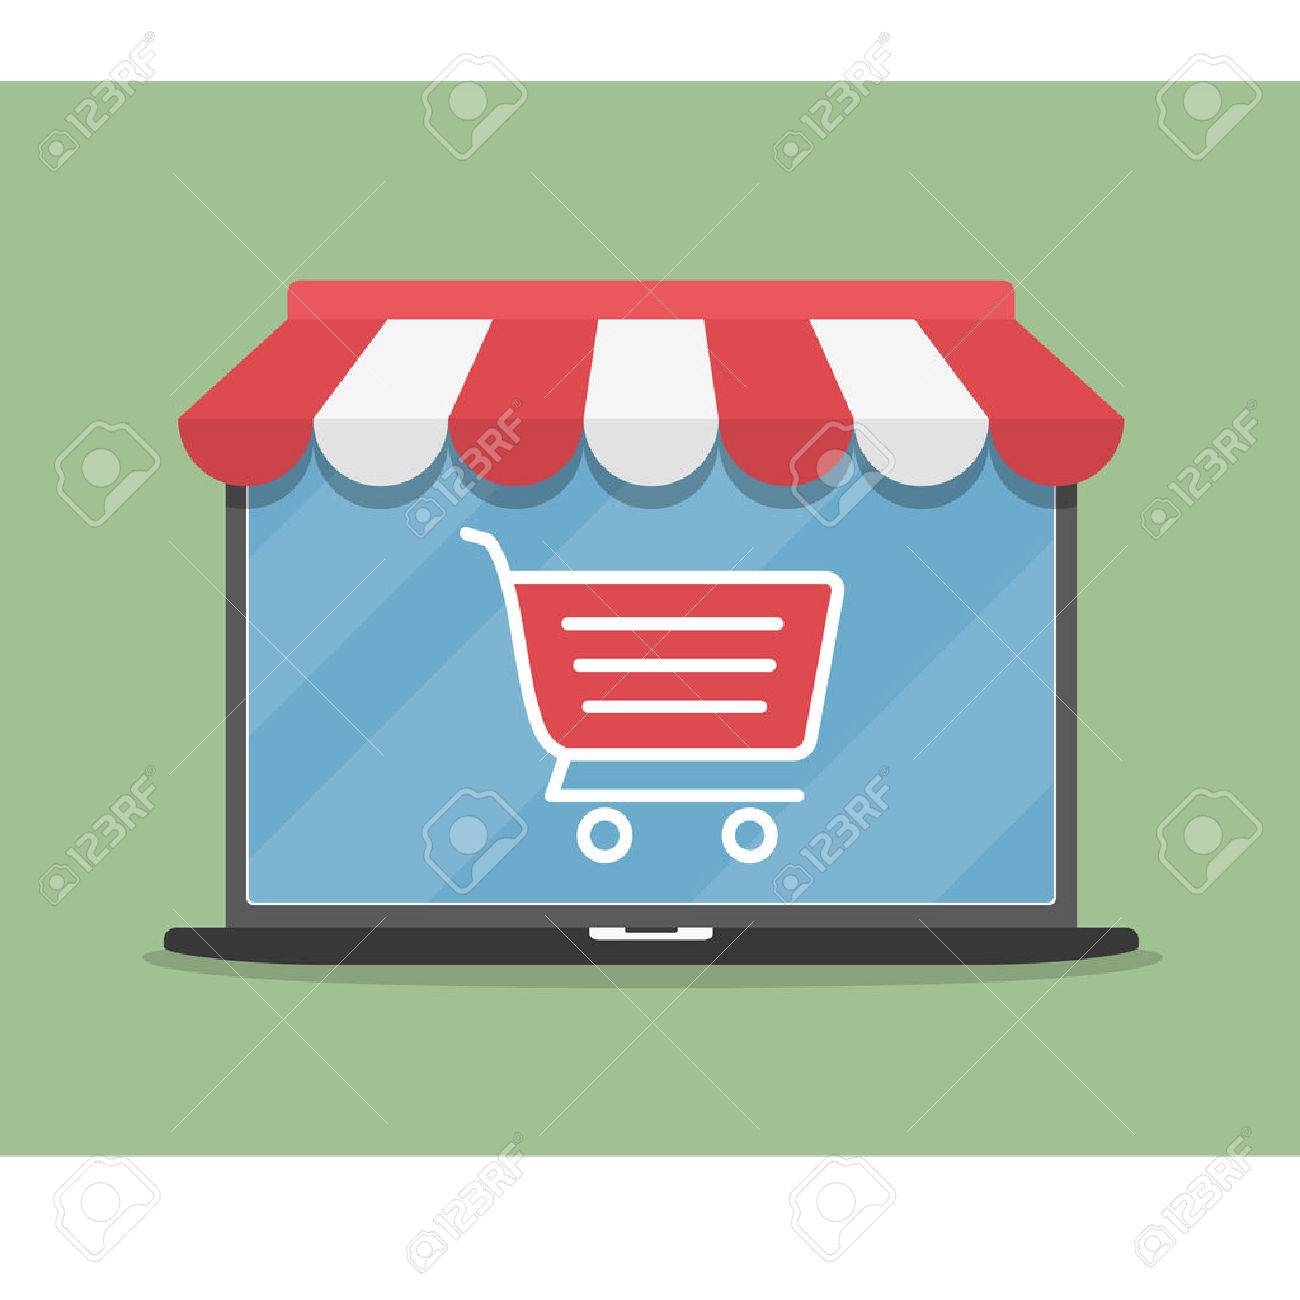 Online store concept illustration, laptop with awning and shopping cart icon, flat design - 48491634